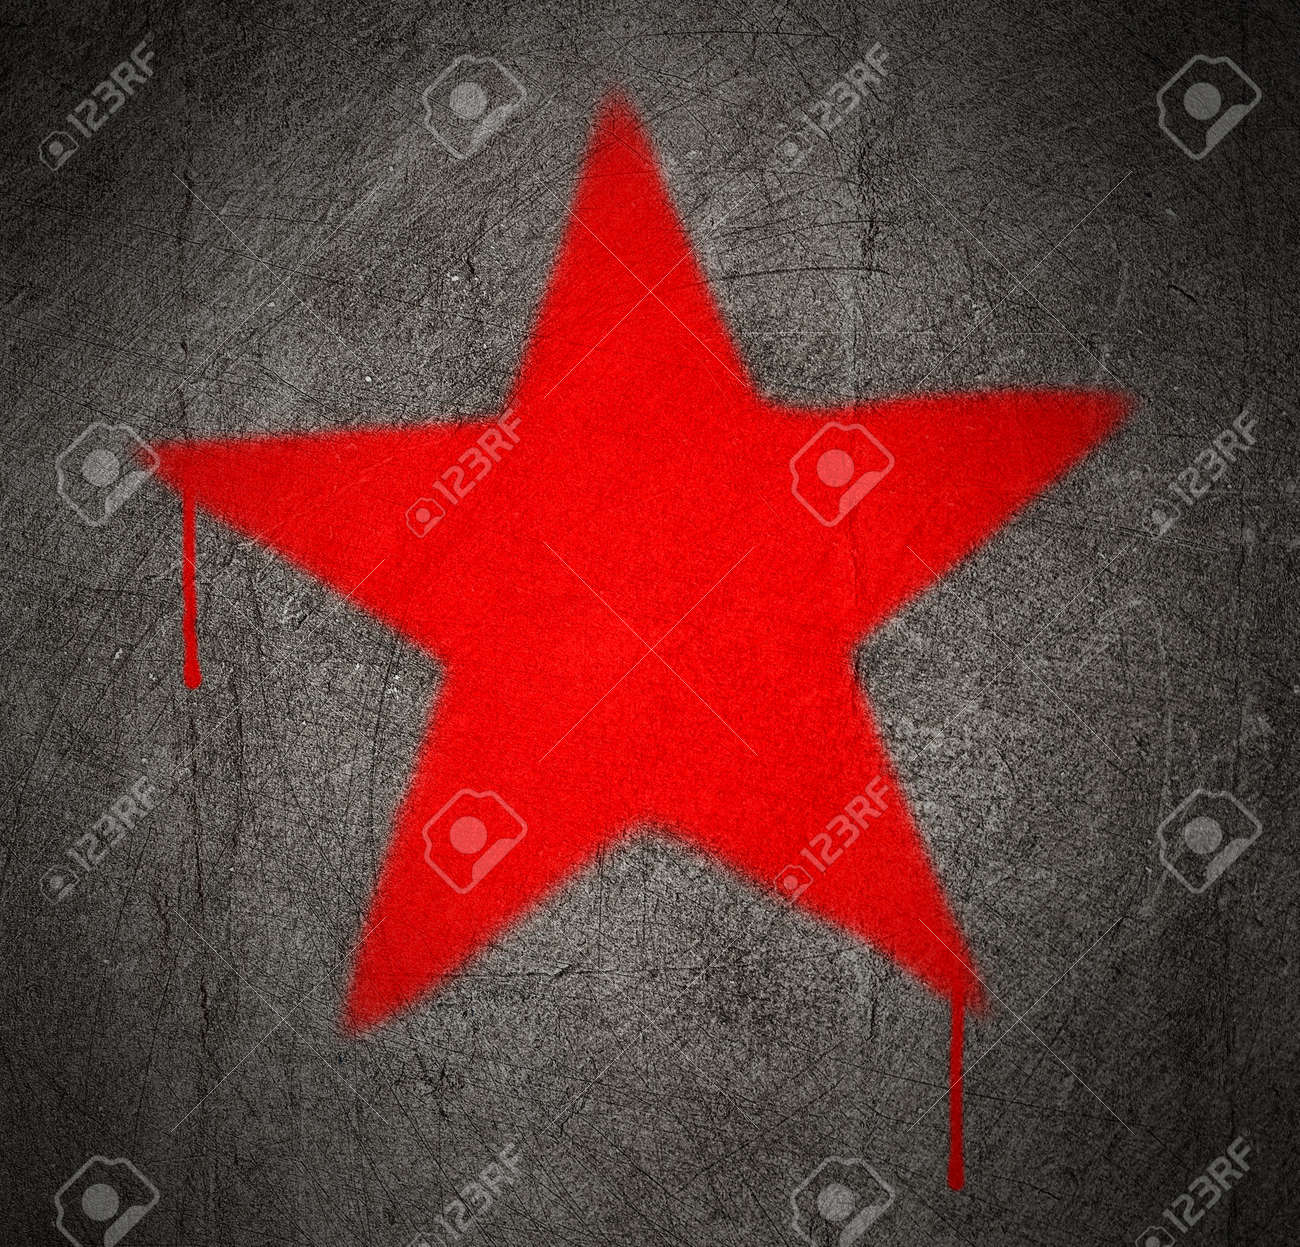 red star graffiti on a grunge concrete wall Stock Photo - 10381883